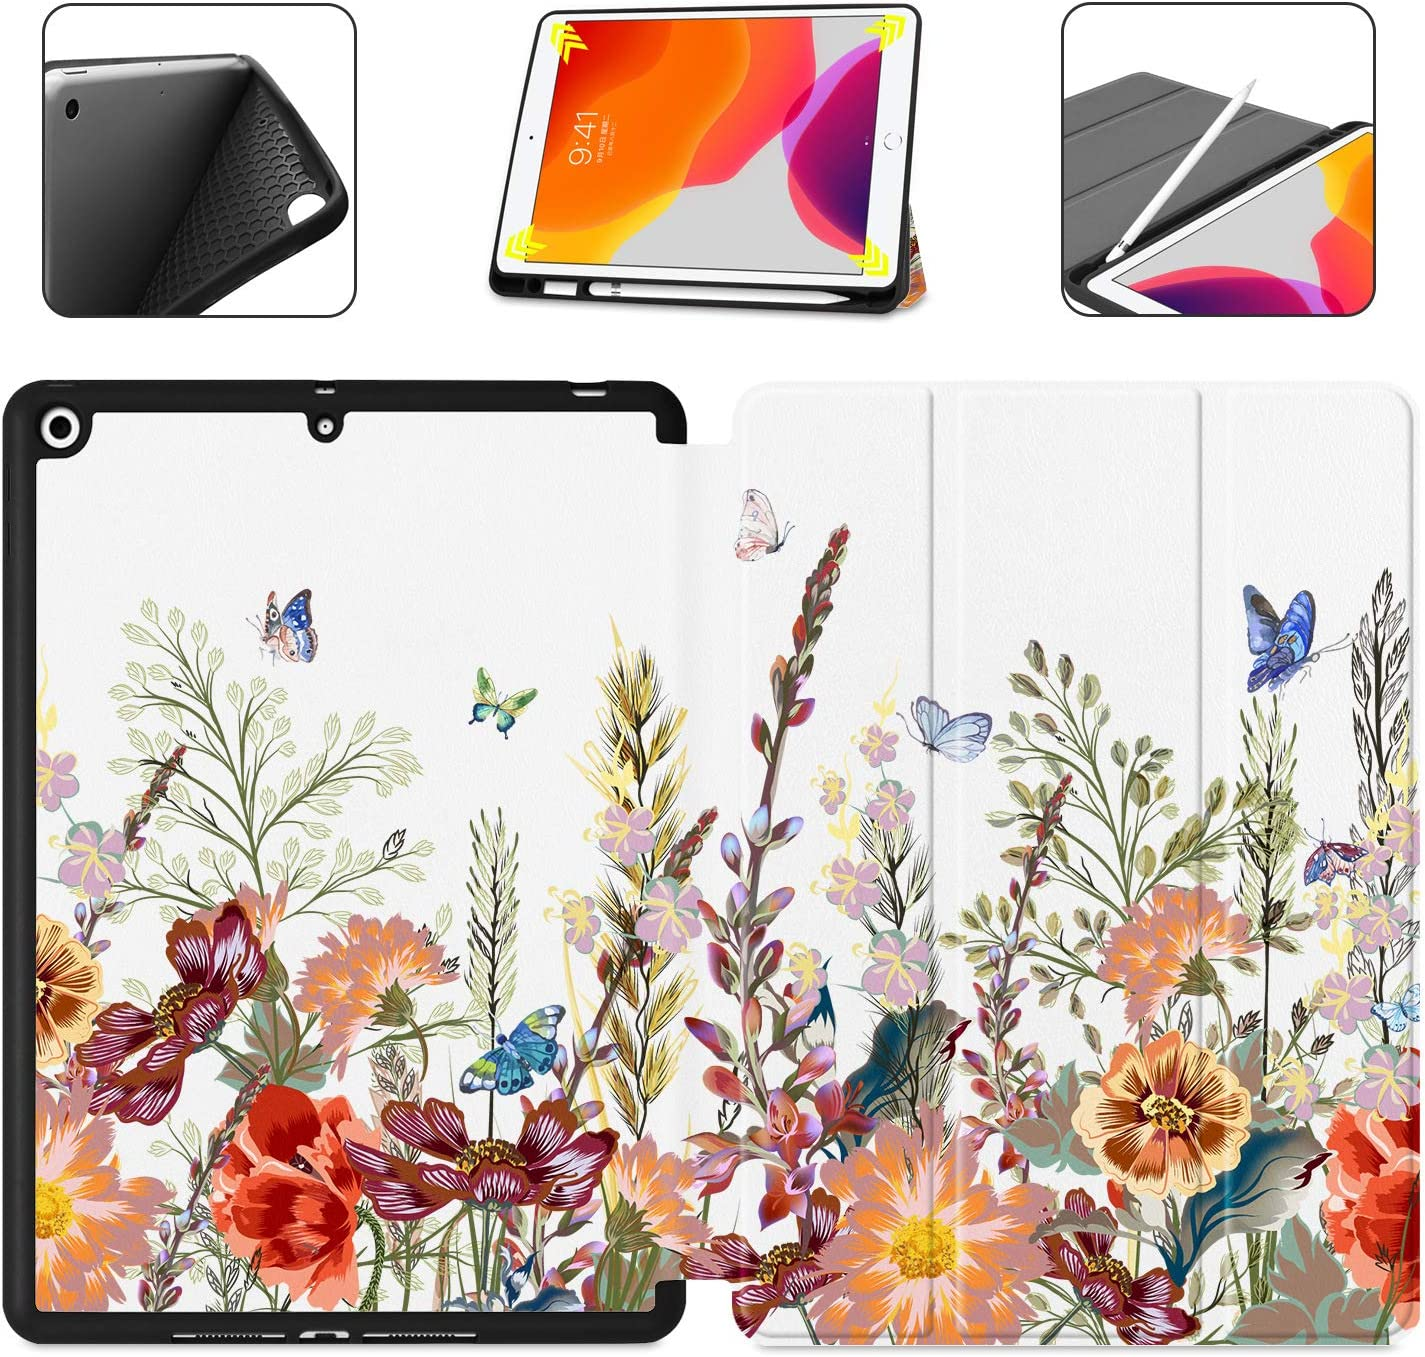 "Dongke New iPad 10.2 Case, Trifold Smart Case with Pencil Holder for iPad 8th/7th Generation 10.2"" 2020 2019 Release Auto Sleep/Wake Lightweight Stand Case, Garden Floral & Butterfly J266"